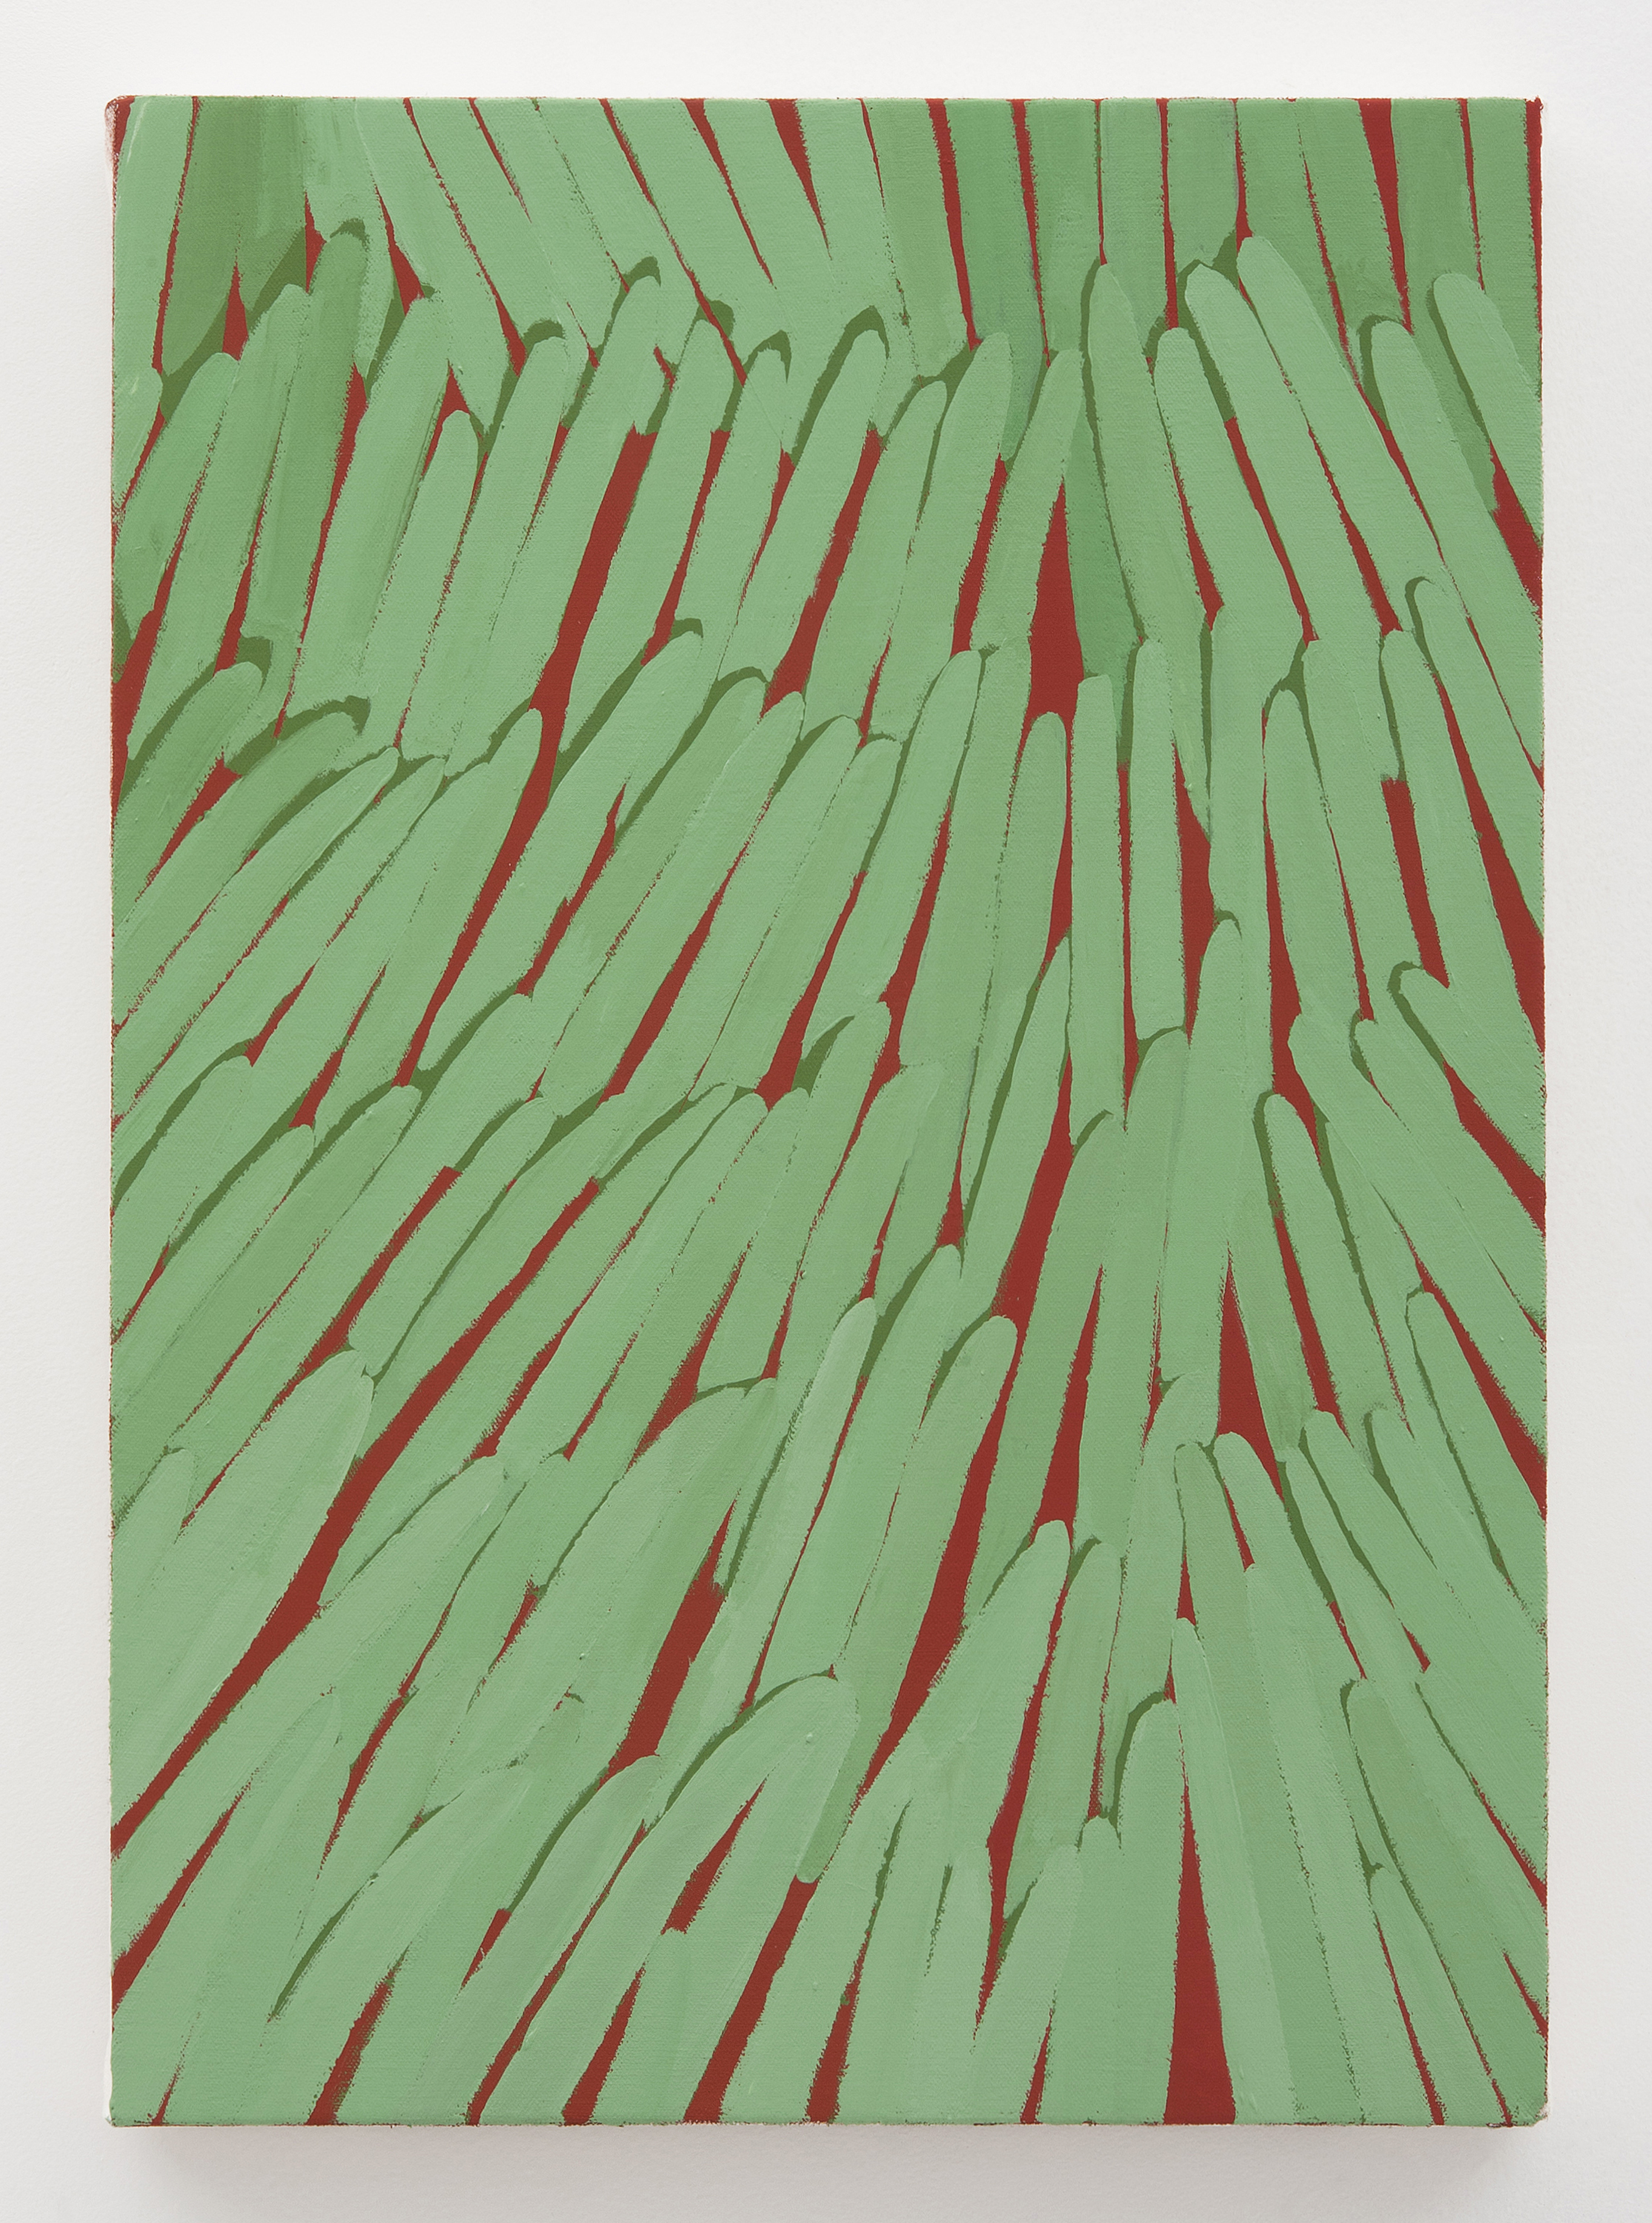 Corydon Cowansage, Grass 42, 2015, acrylic on canvas, 20 x 14 inches